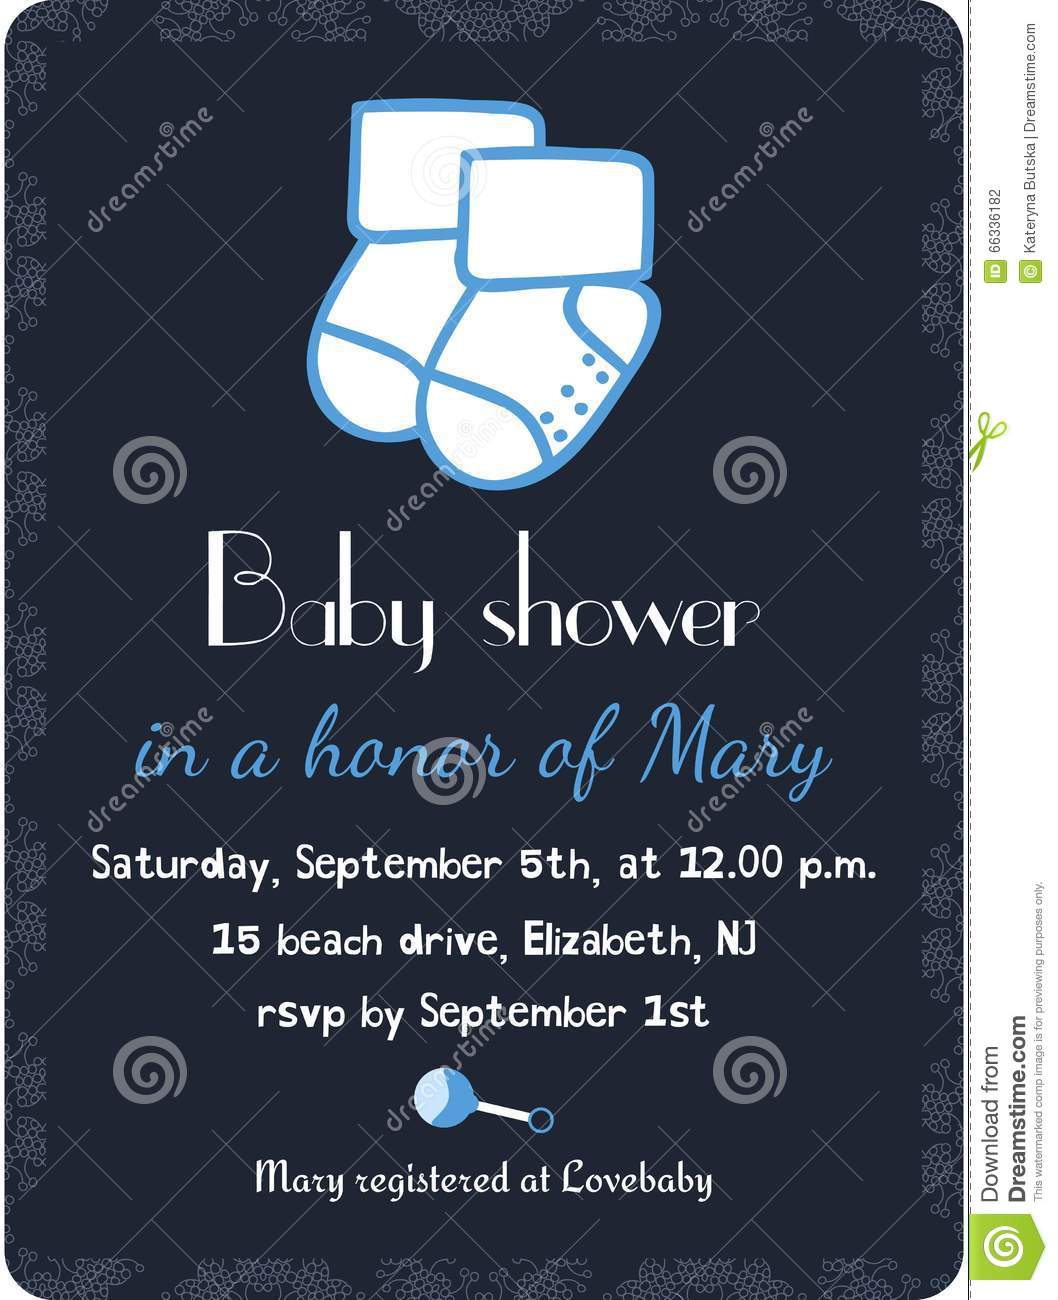 Baby boy arrival card vector by leonart image 600444 vectorstock - Baby Shower Invitation Card Template Invitation Postcard Wallpaper Gallery Baby Boy Shower Card